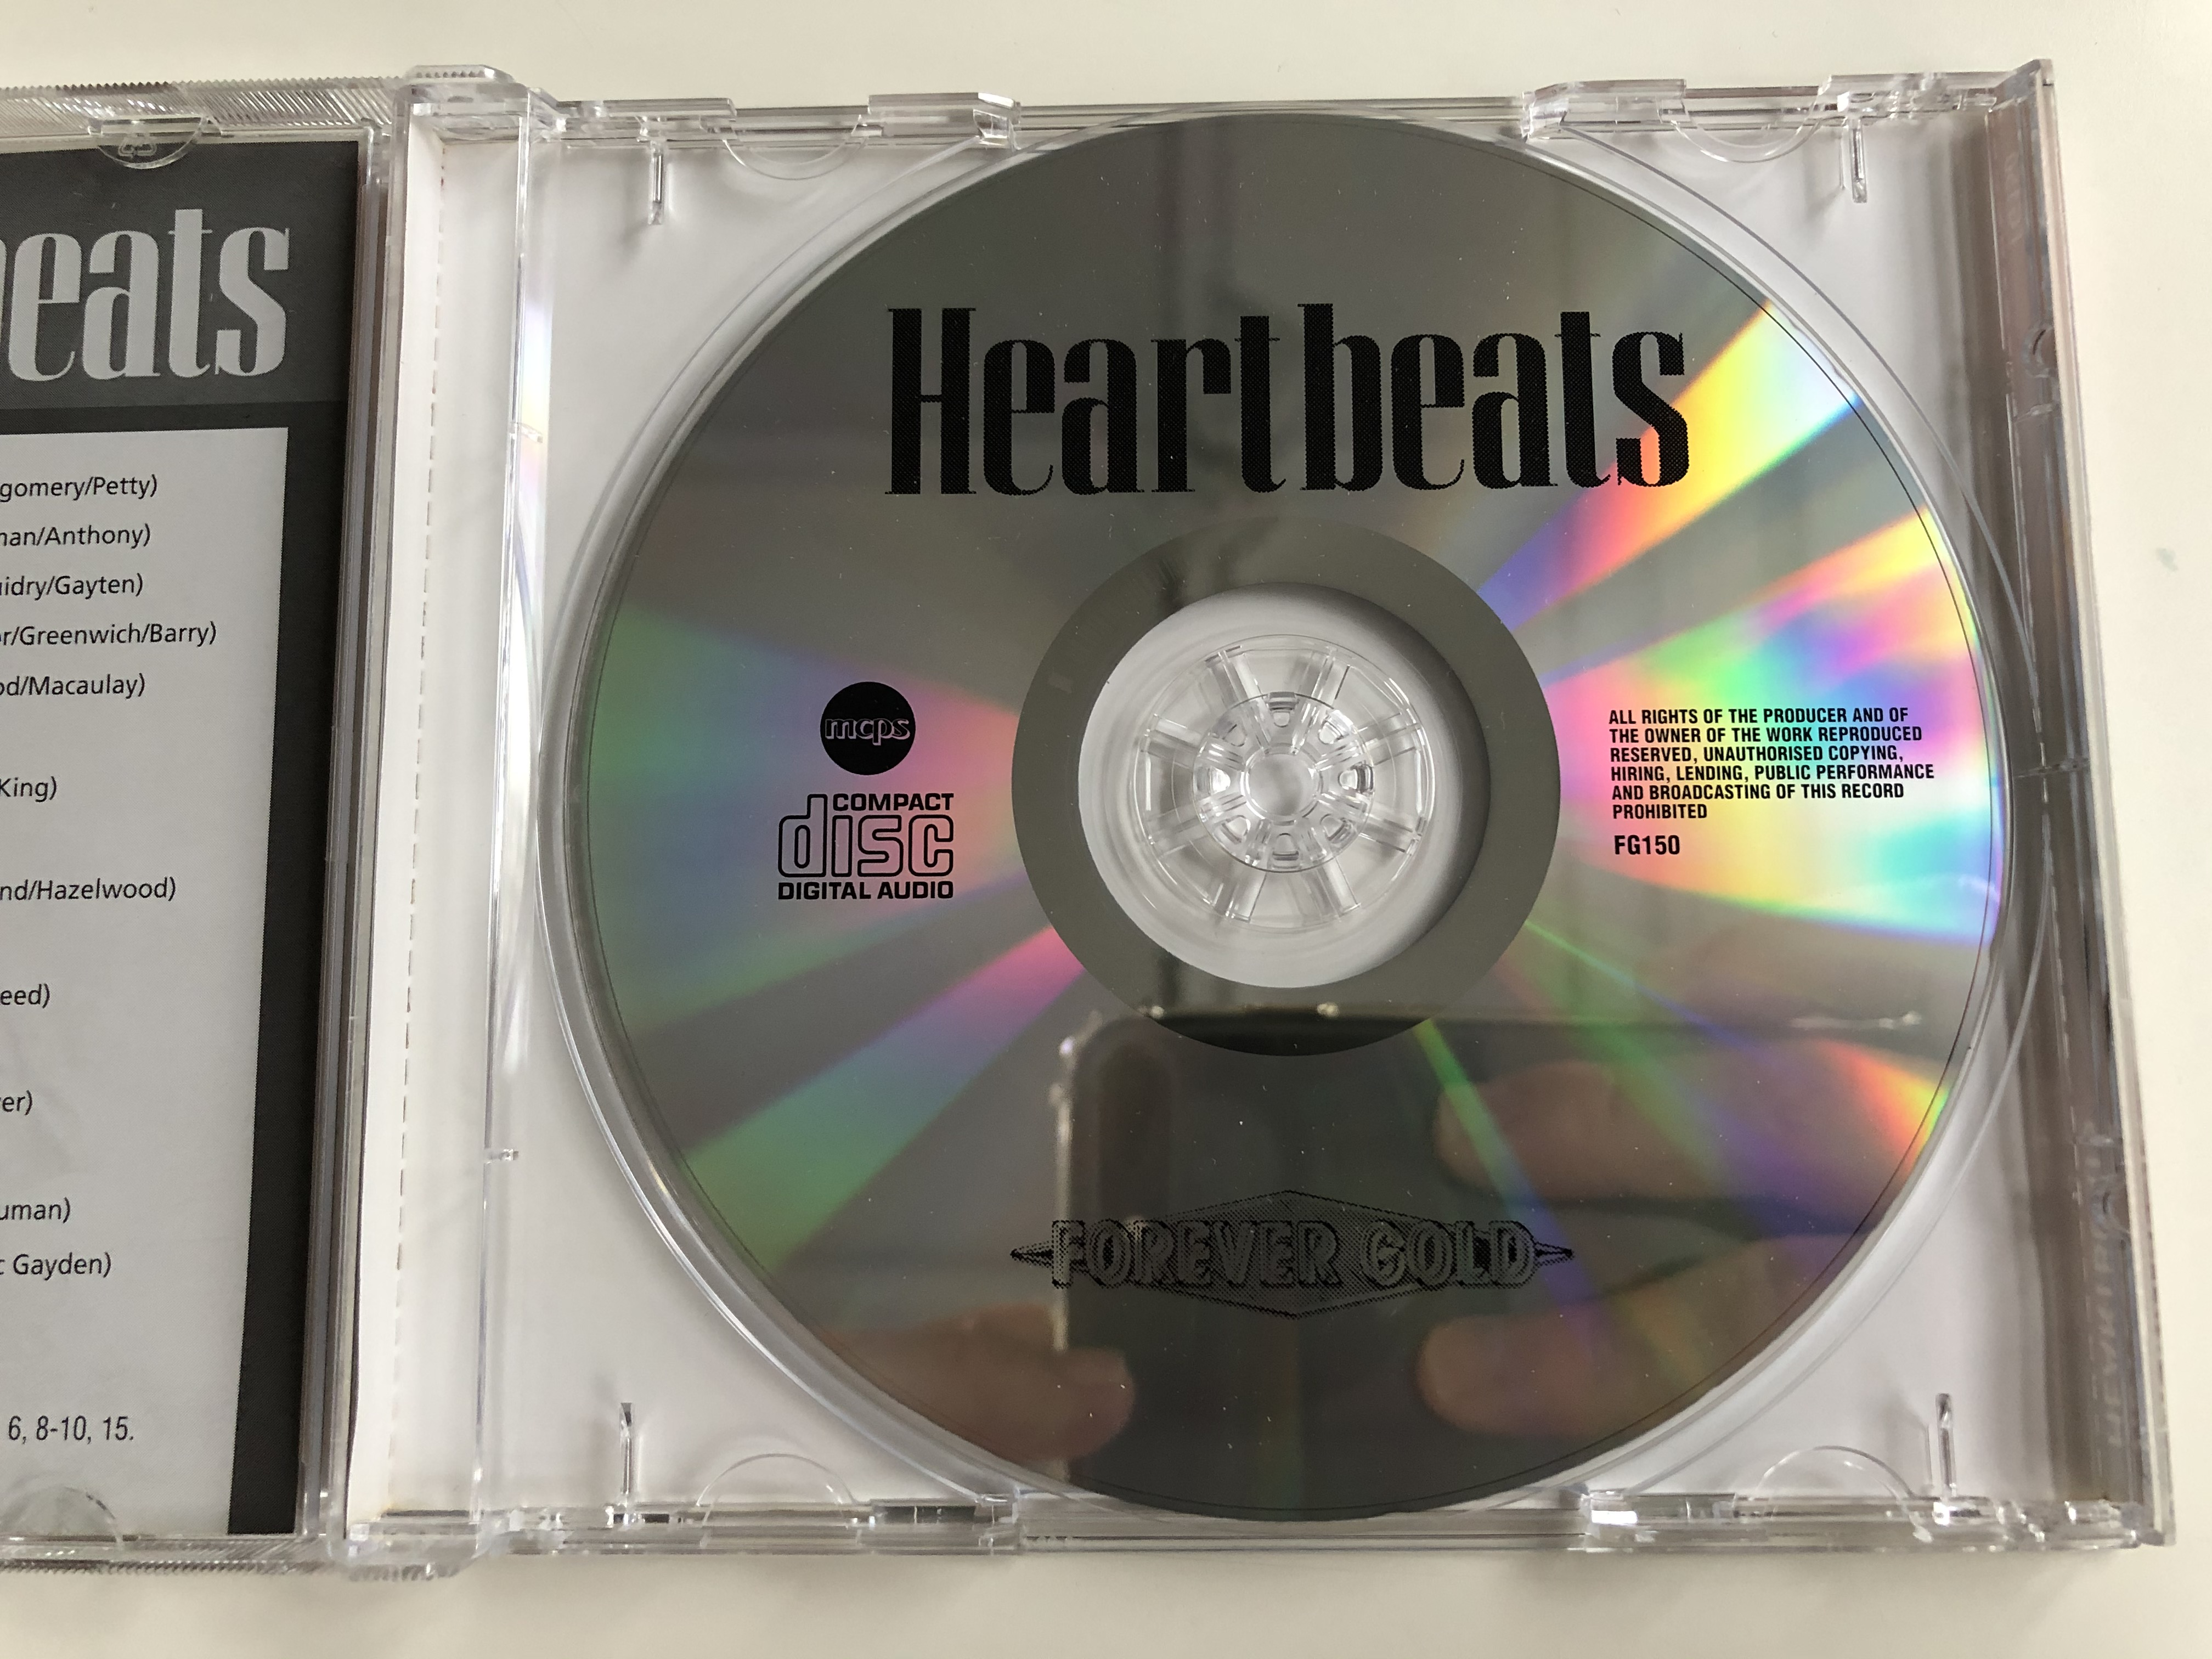 heartbeats-buddy-holly-the-picks-johnny-tillotson-the-foundations-the-shirelles-forever-gold-audio-cd-2001-fg150-3-.jpg